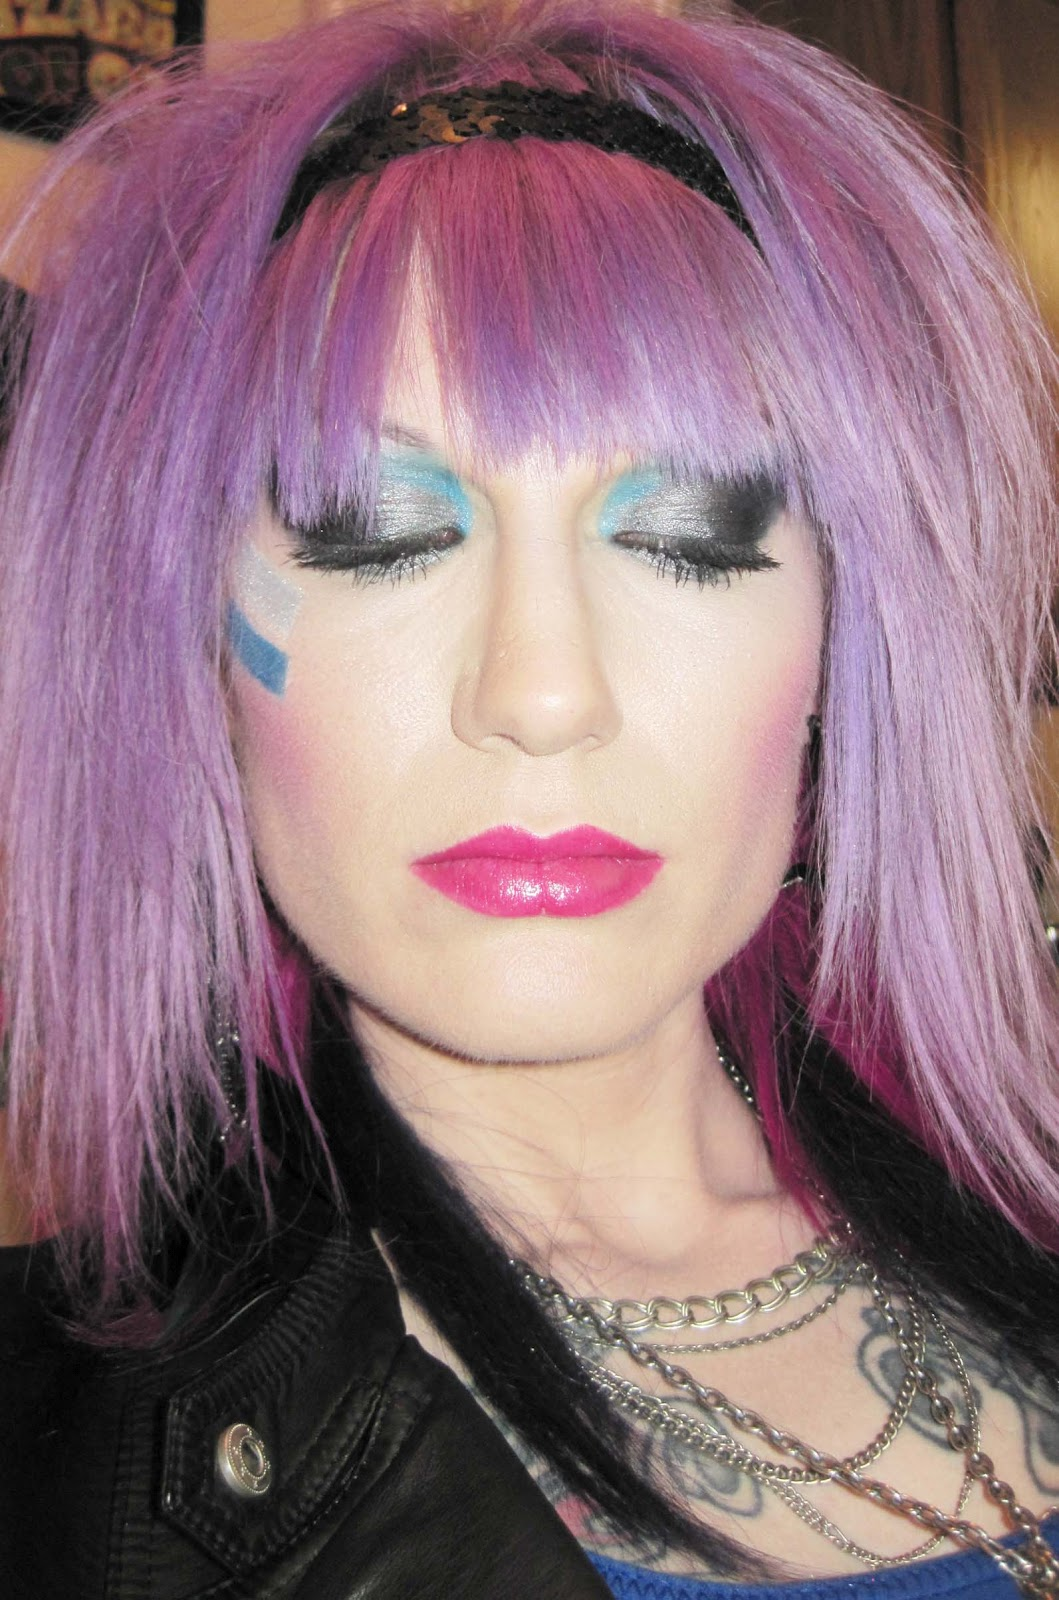 Close ups of the makeup. 1059 x 1600.Eighties Hairstyles And Makeup